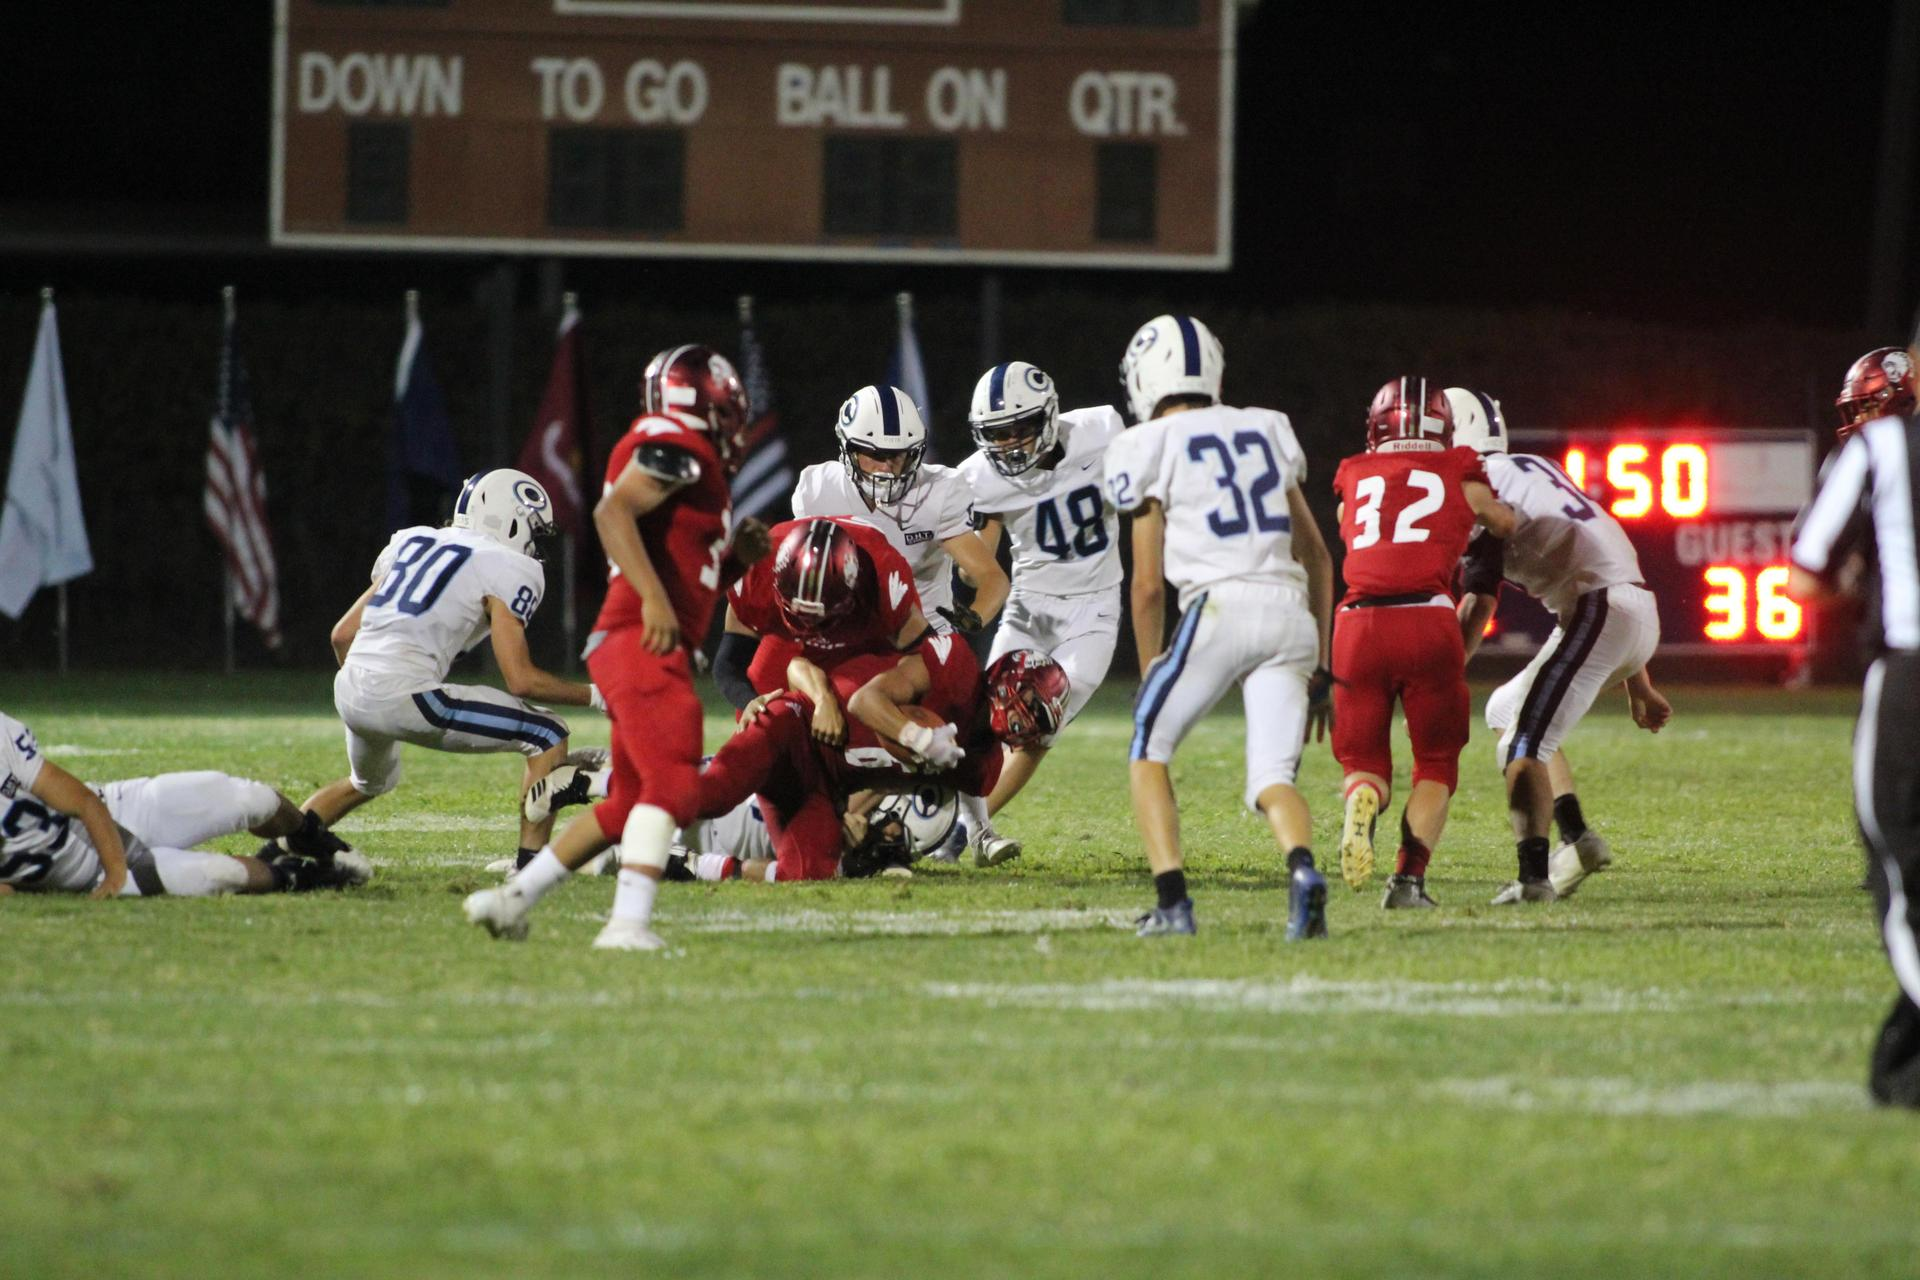 Varsity football in action against Central Valley Christian